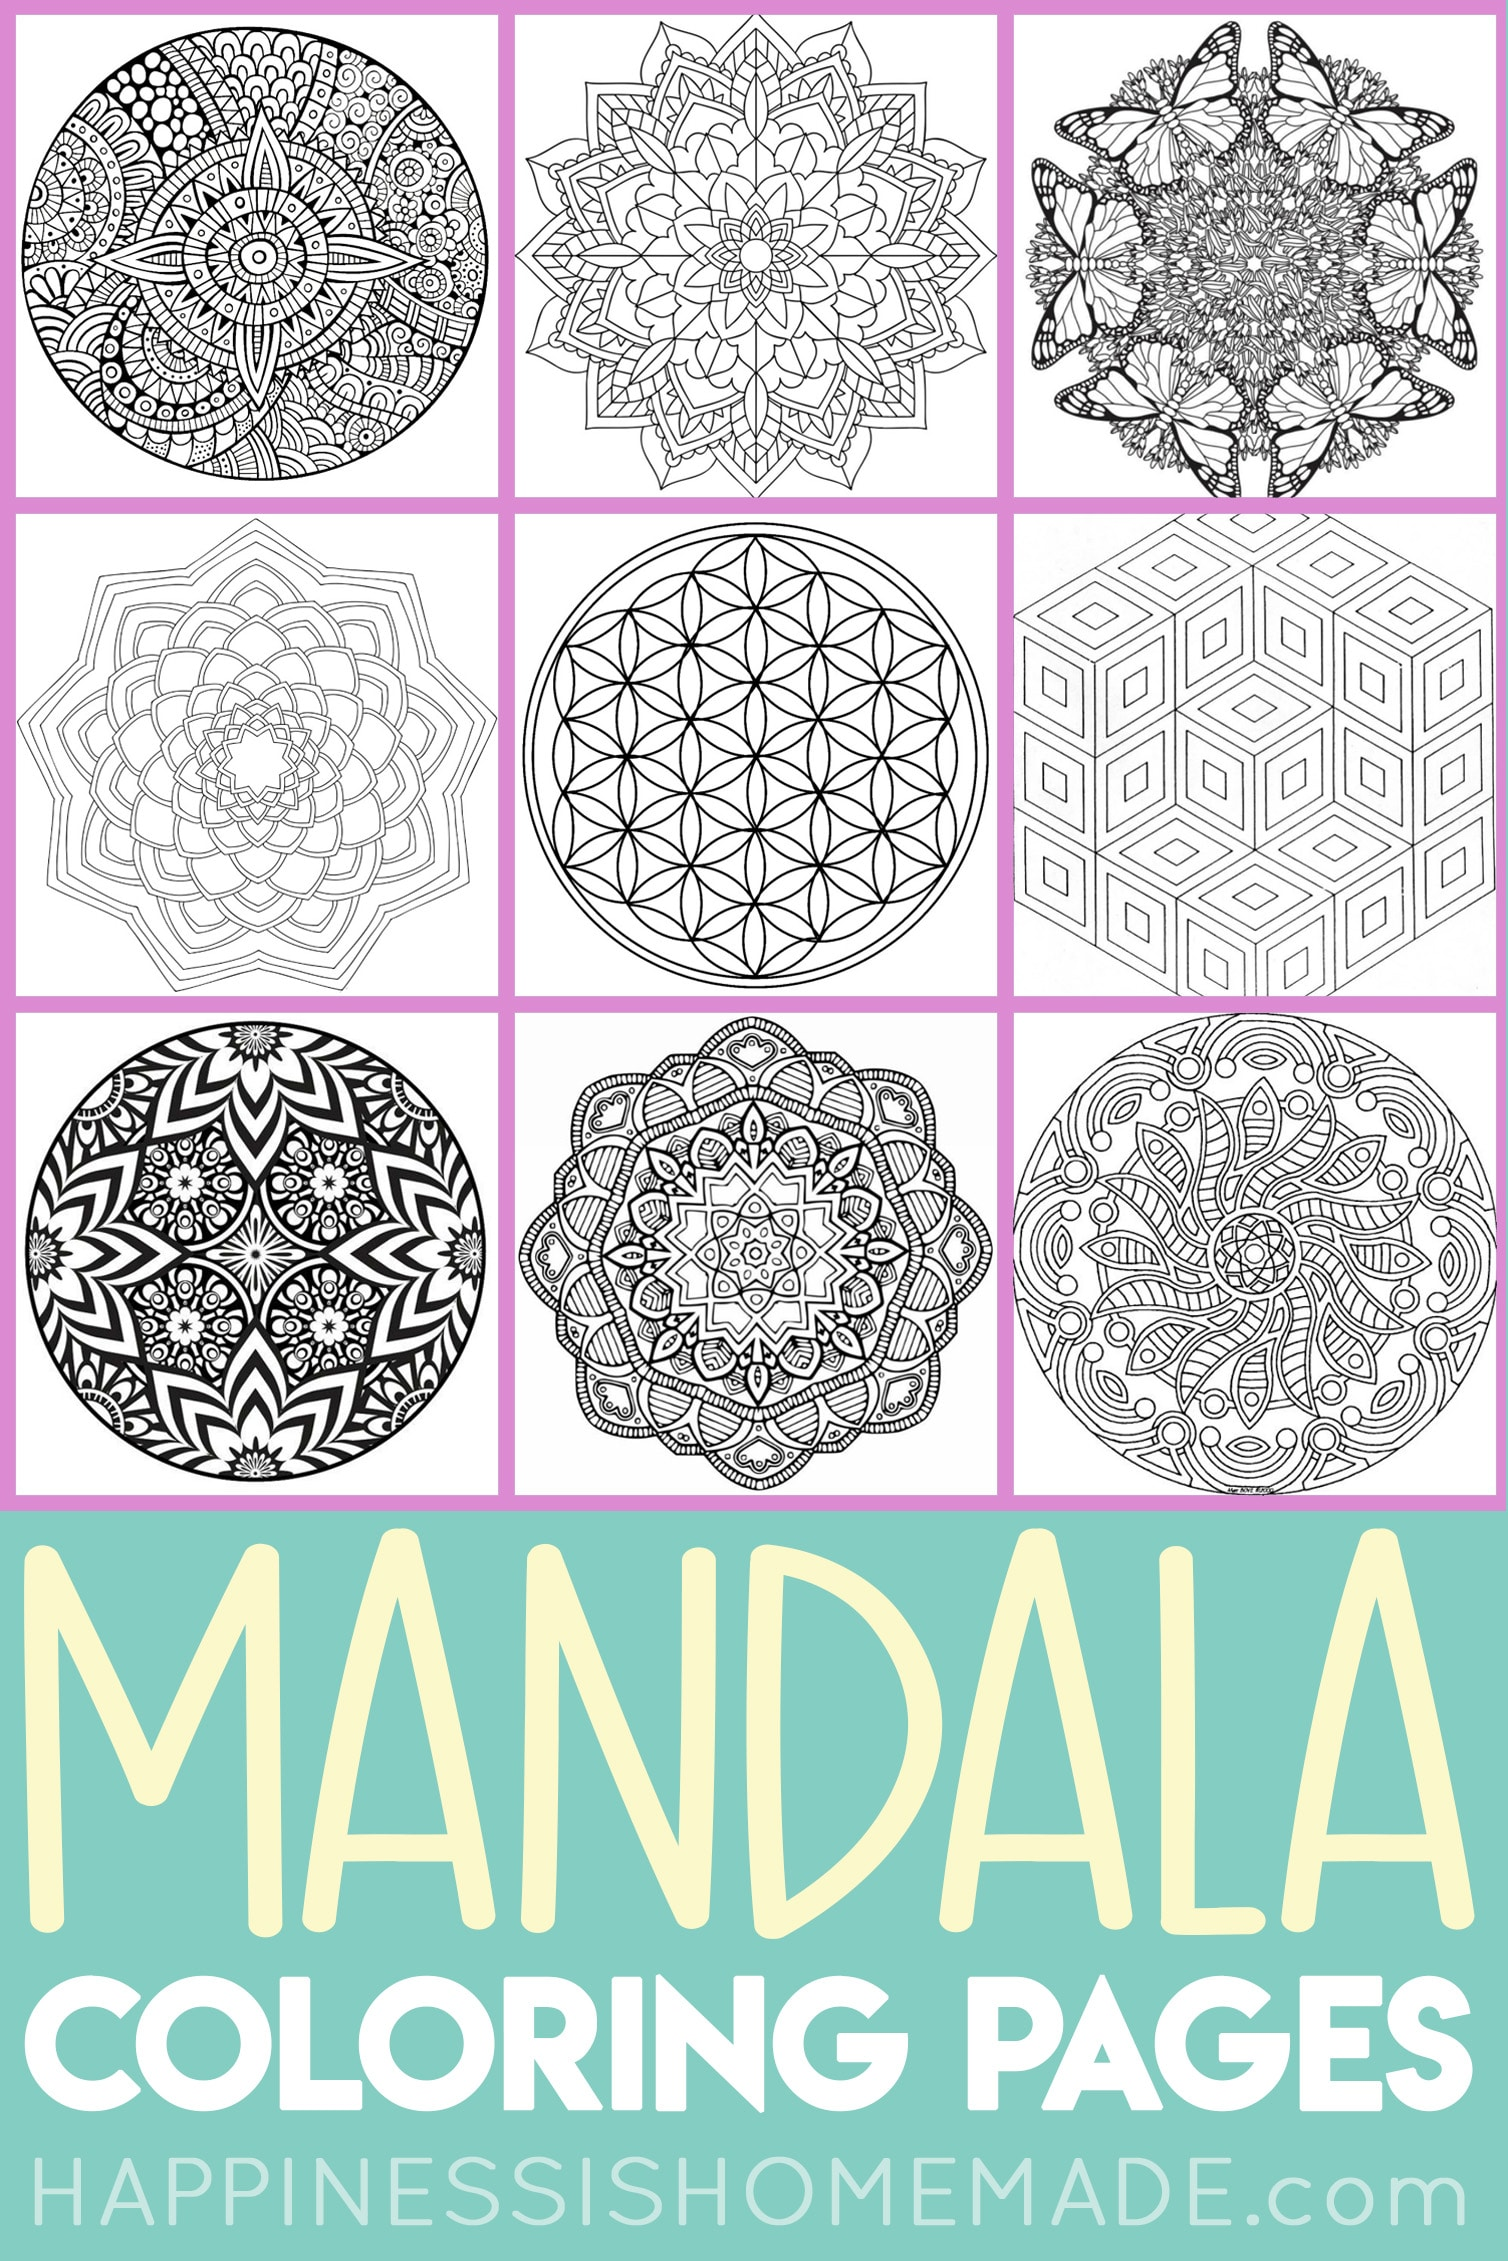 Mandala-Coloring-Pages-for-All-Ages